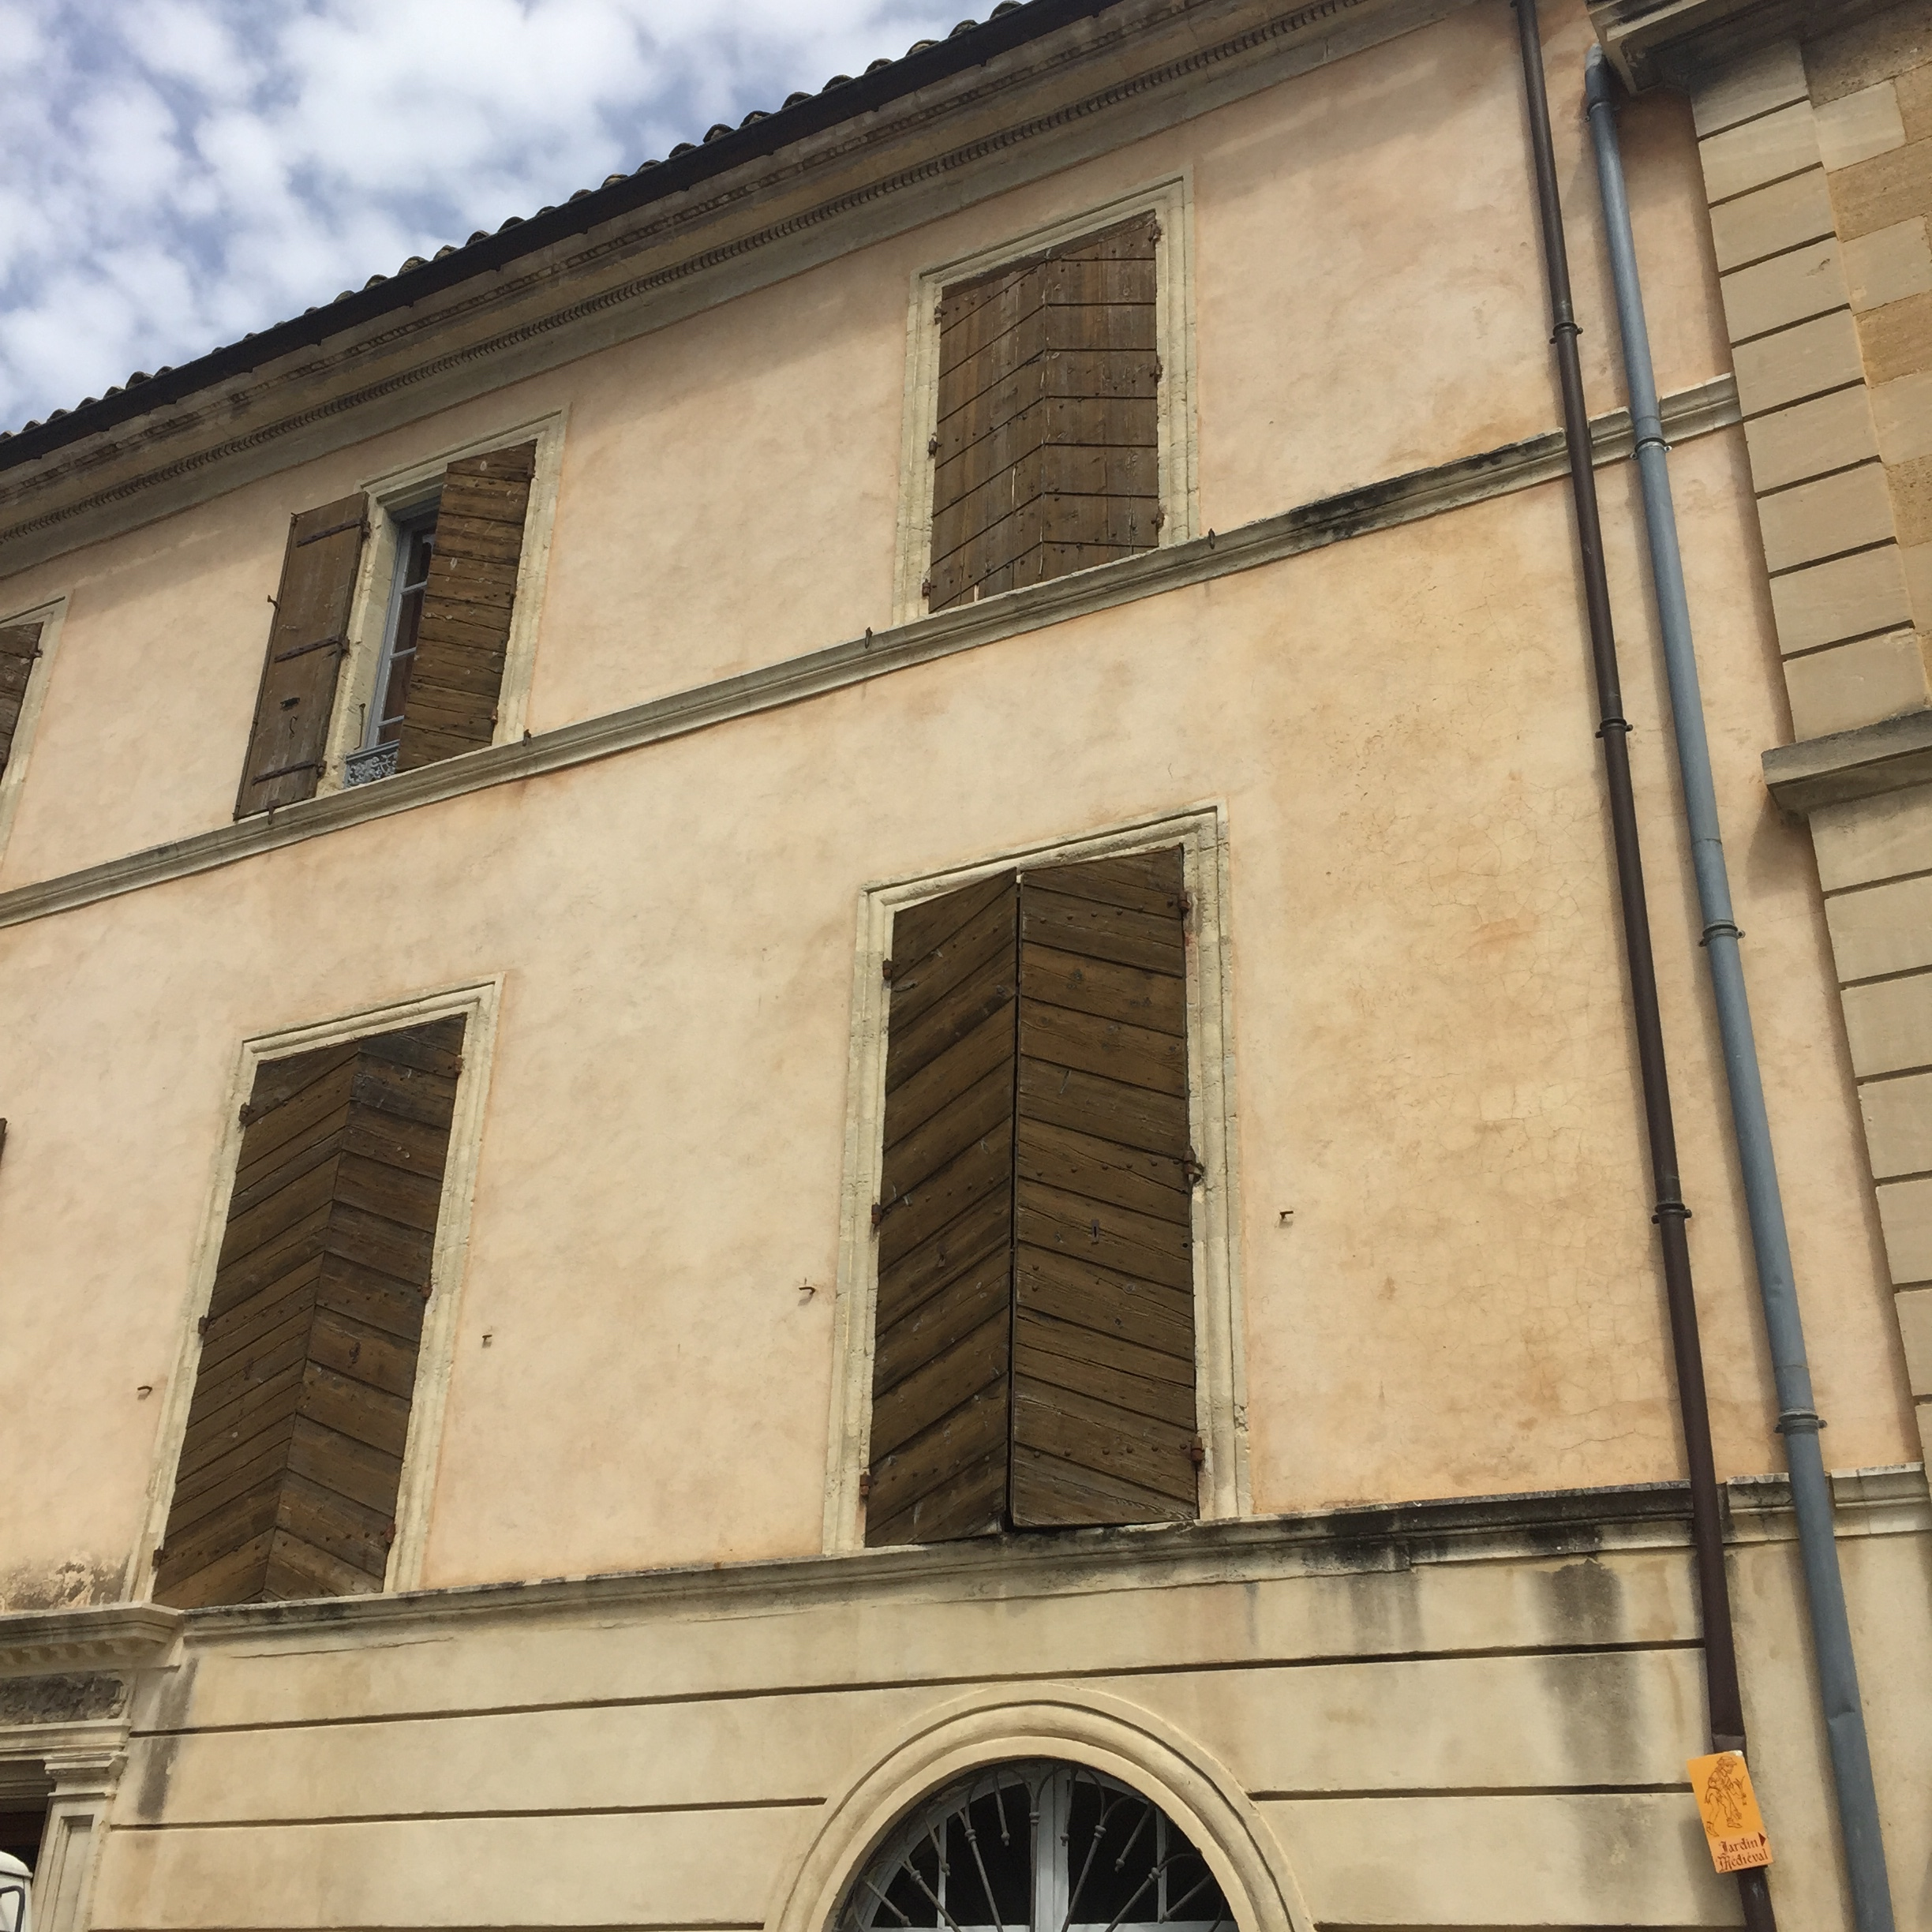 Shuttered windows in Uzes keep insides cooler in the summer